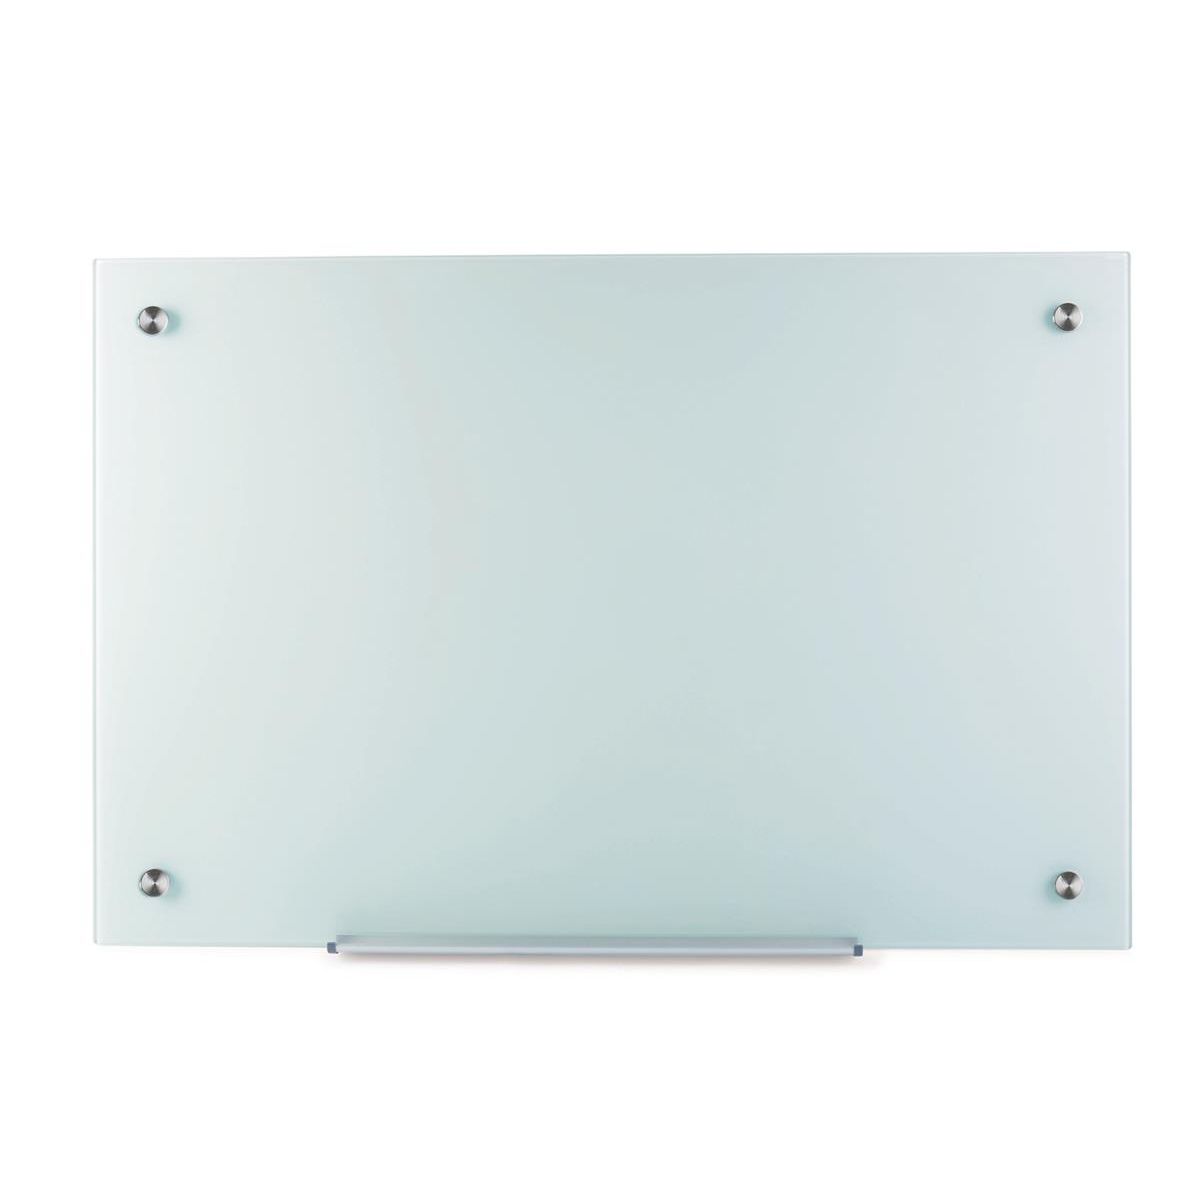 5 Star Office Glass Board Magnetic with Wall Fixings W900xH600mm White